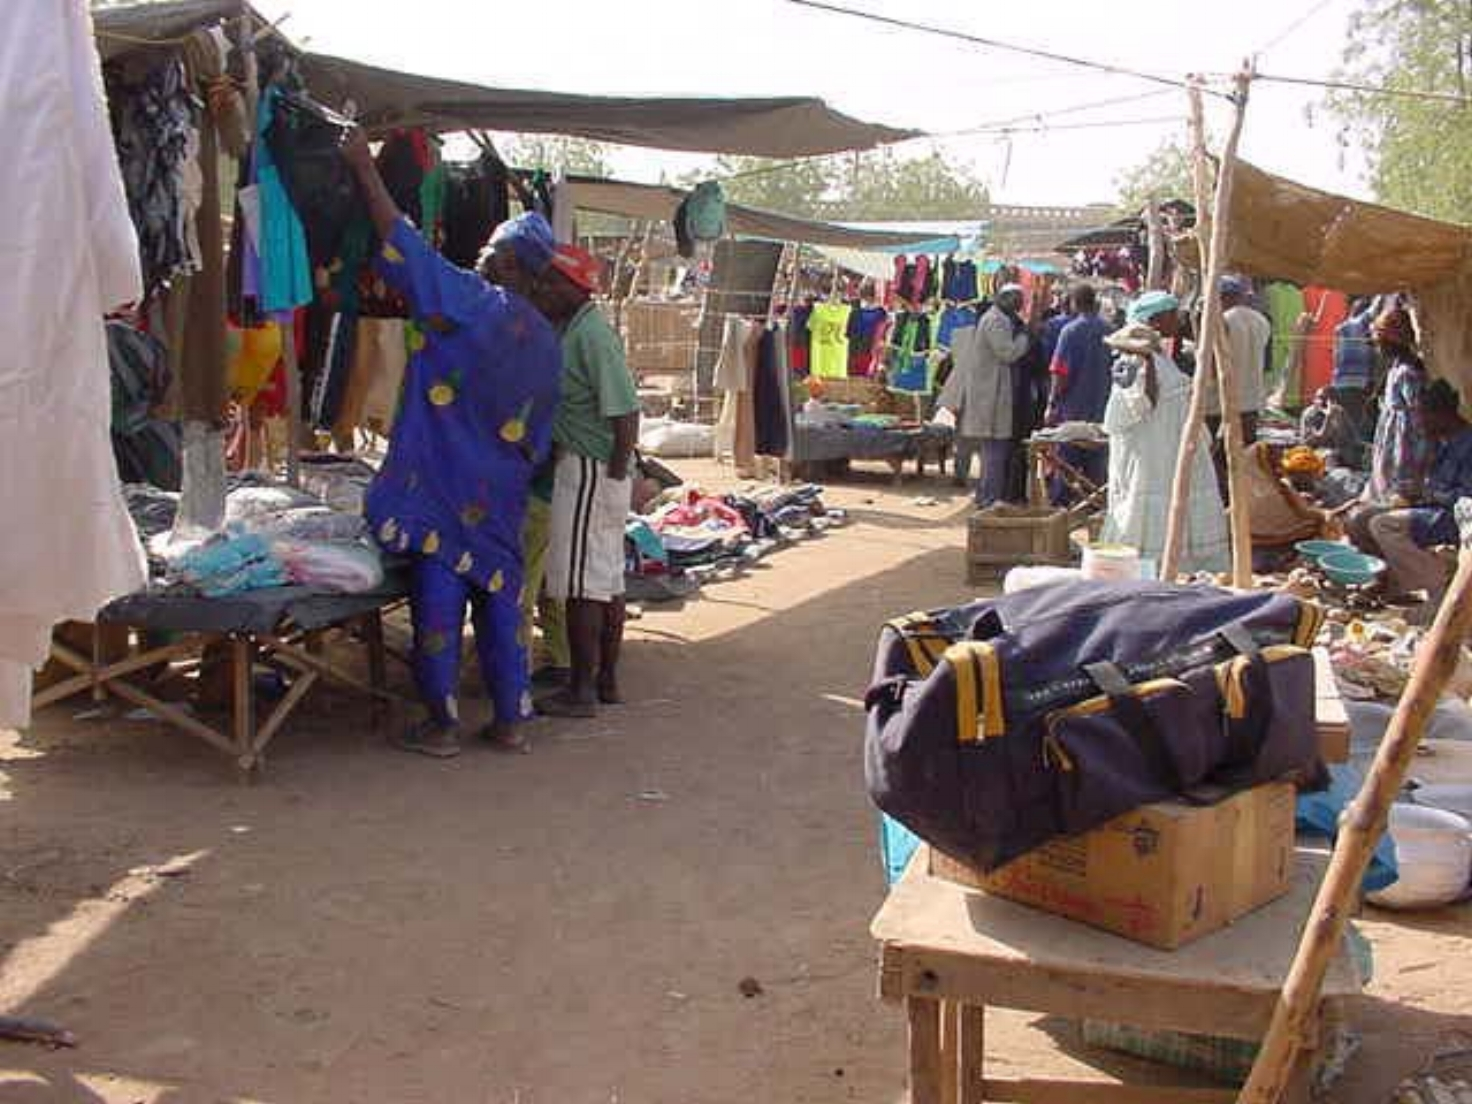 Market day in Djenne Mali